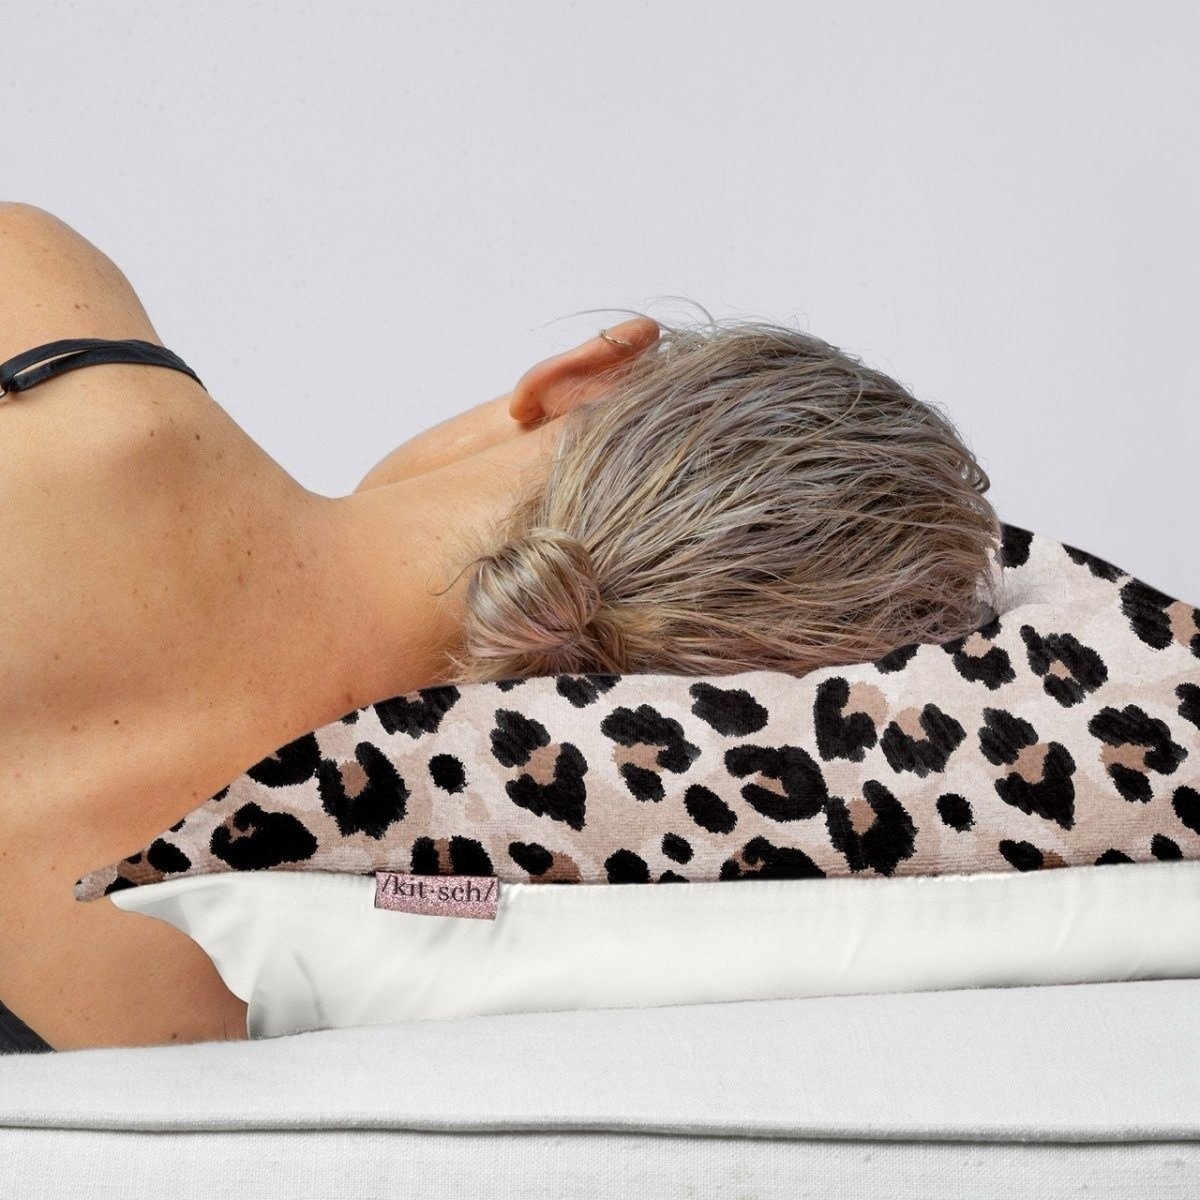 A model sleeping on a leopard print pillowcase with white lining underneath